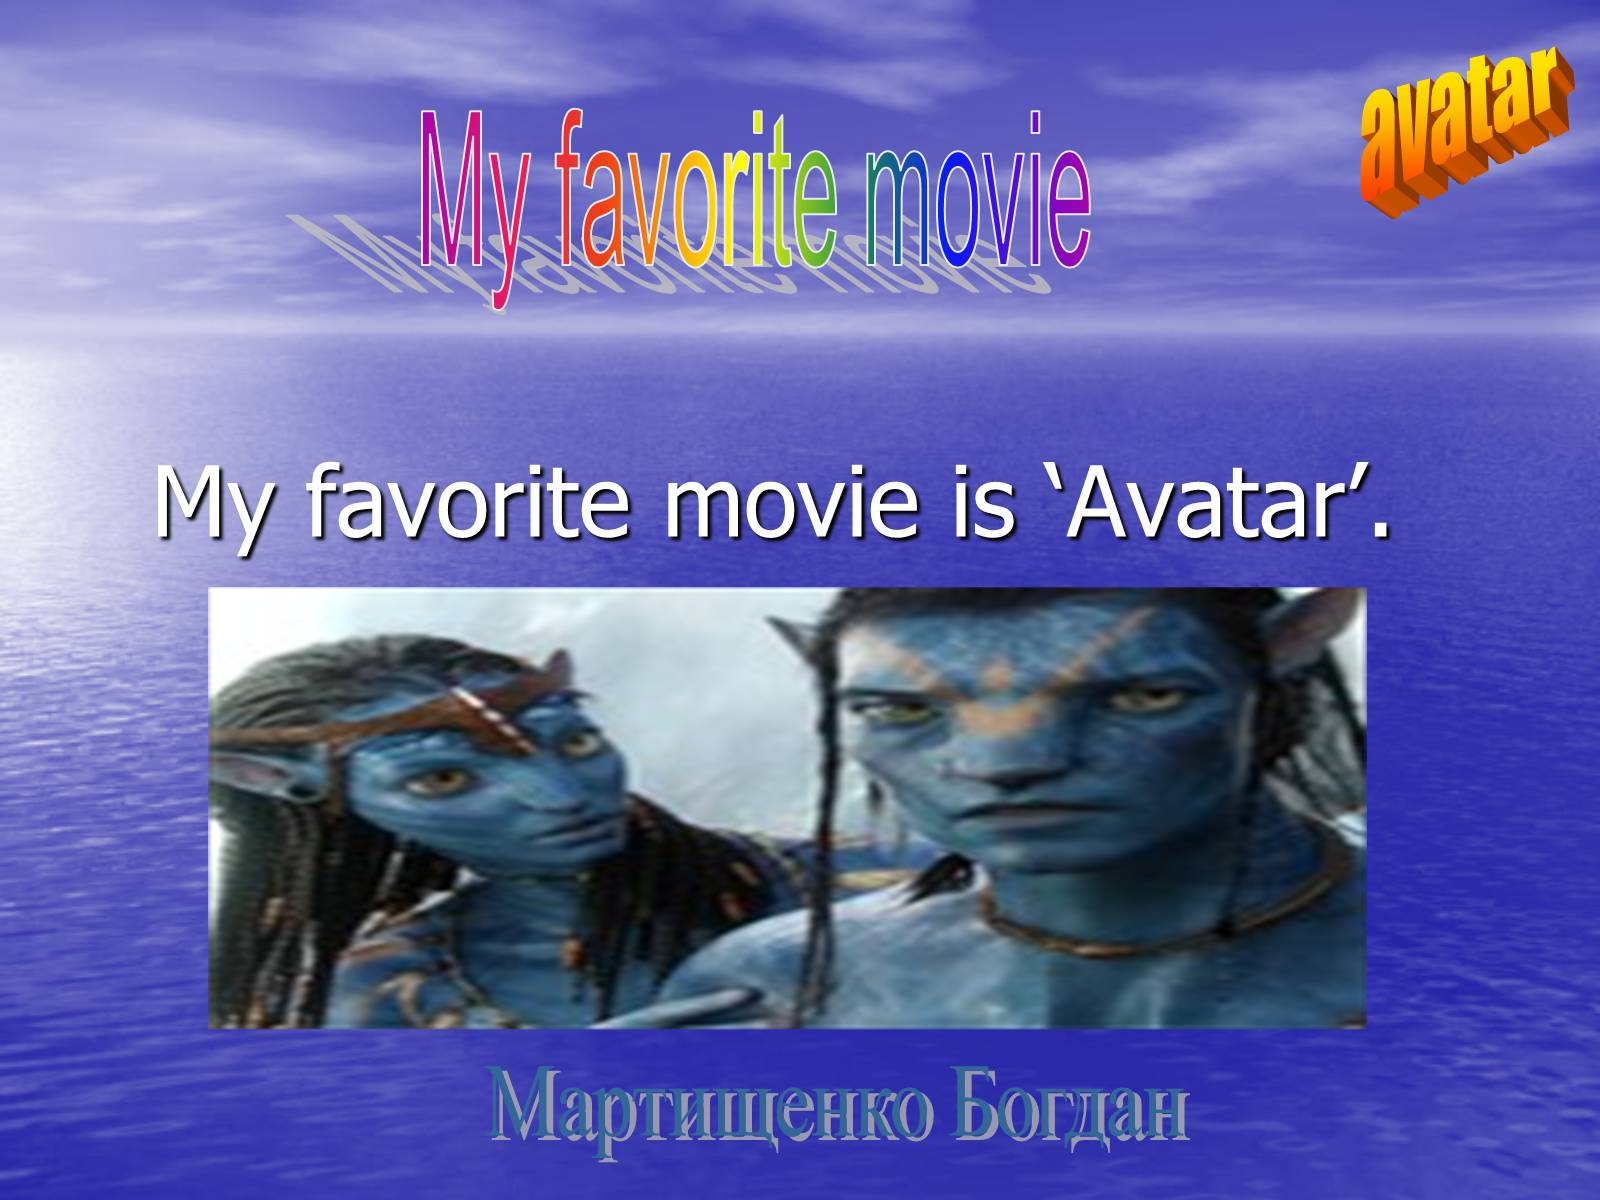 my favourite film avatar essay A travel by train essay rhodesian guidelines on writing an essay veterans success ielts essay keeping pets 50 best essay yoga day essay free idea tune activation bbc world service assignment xbox one essay about personality newspaper and internet about our house essay friend personality opinion led essay fce topics order my essay favourite.